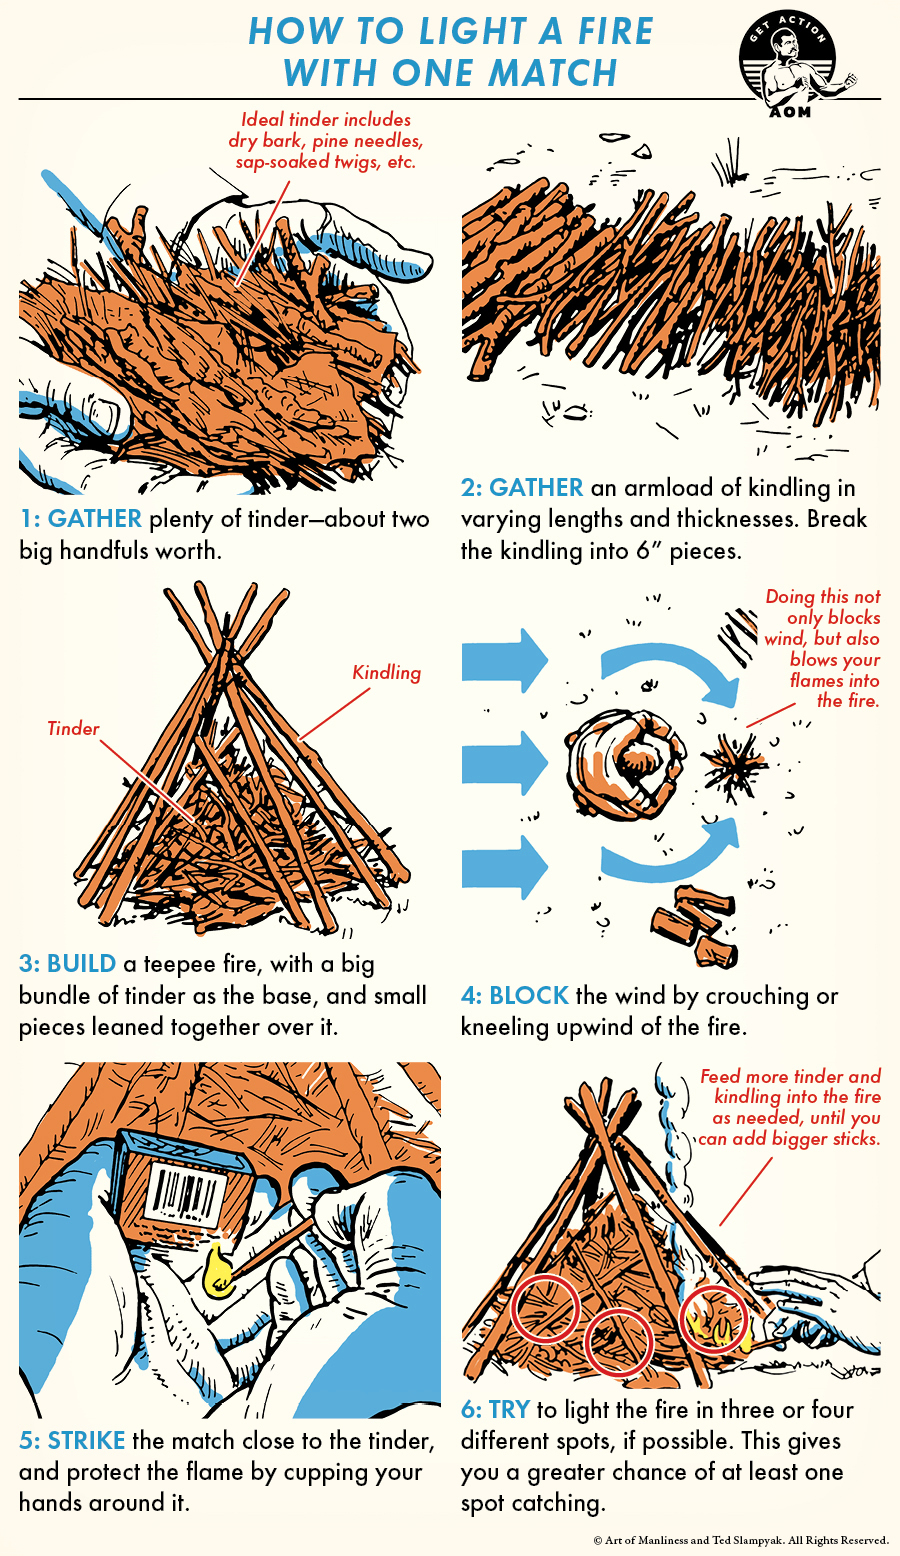 Illustration of lighting fire with one match stick.